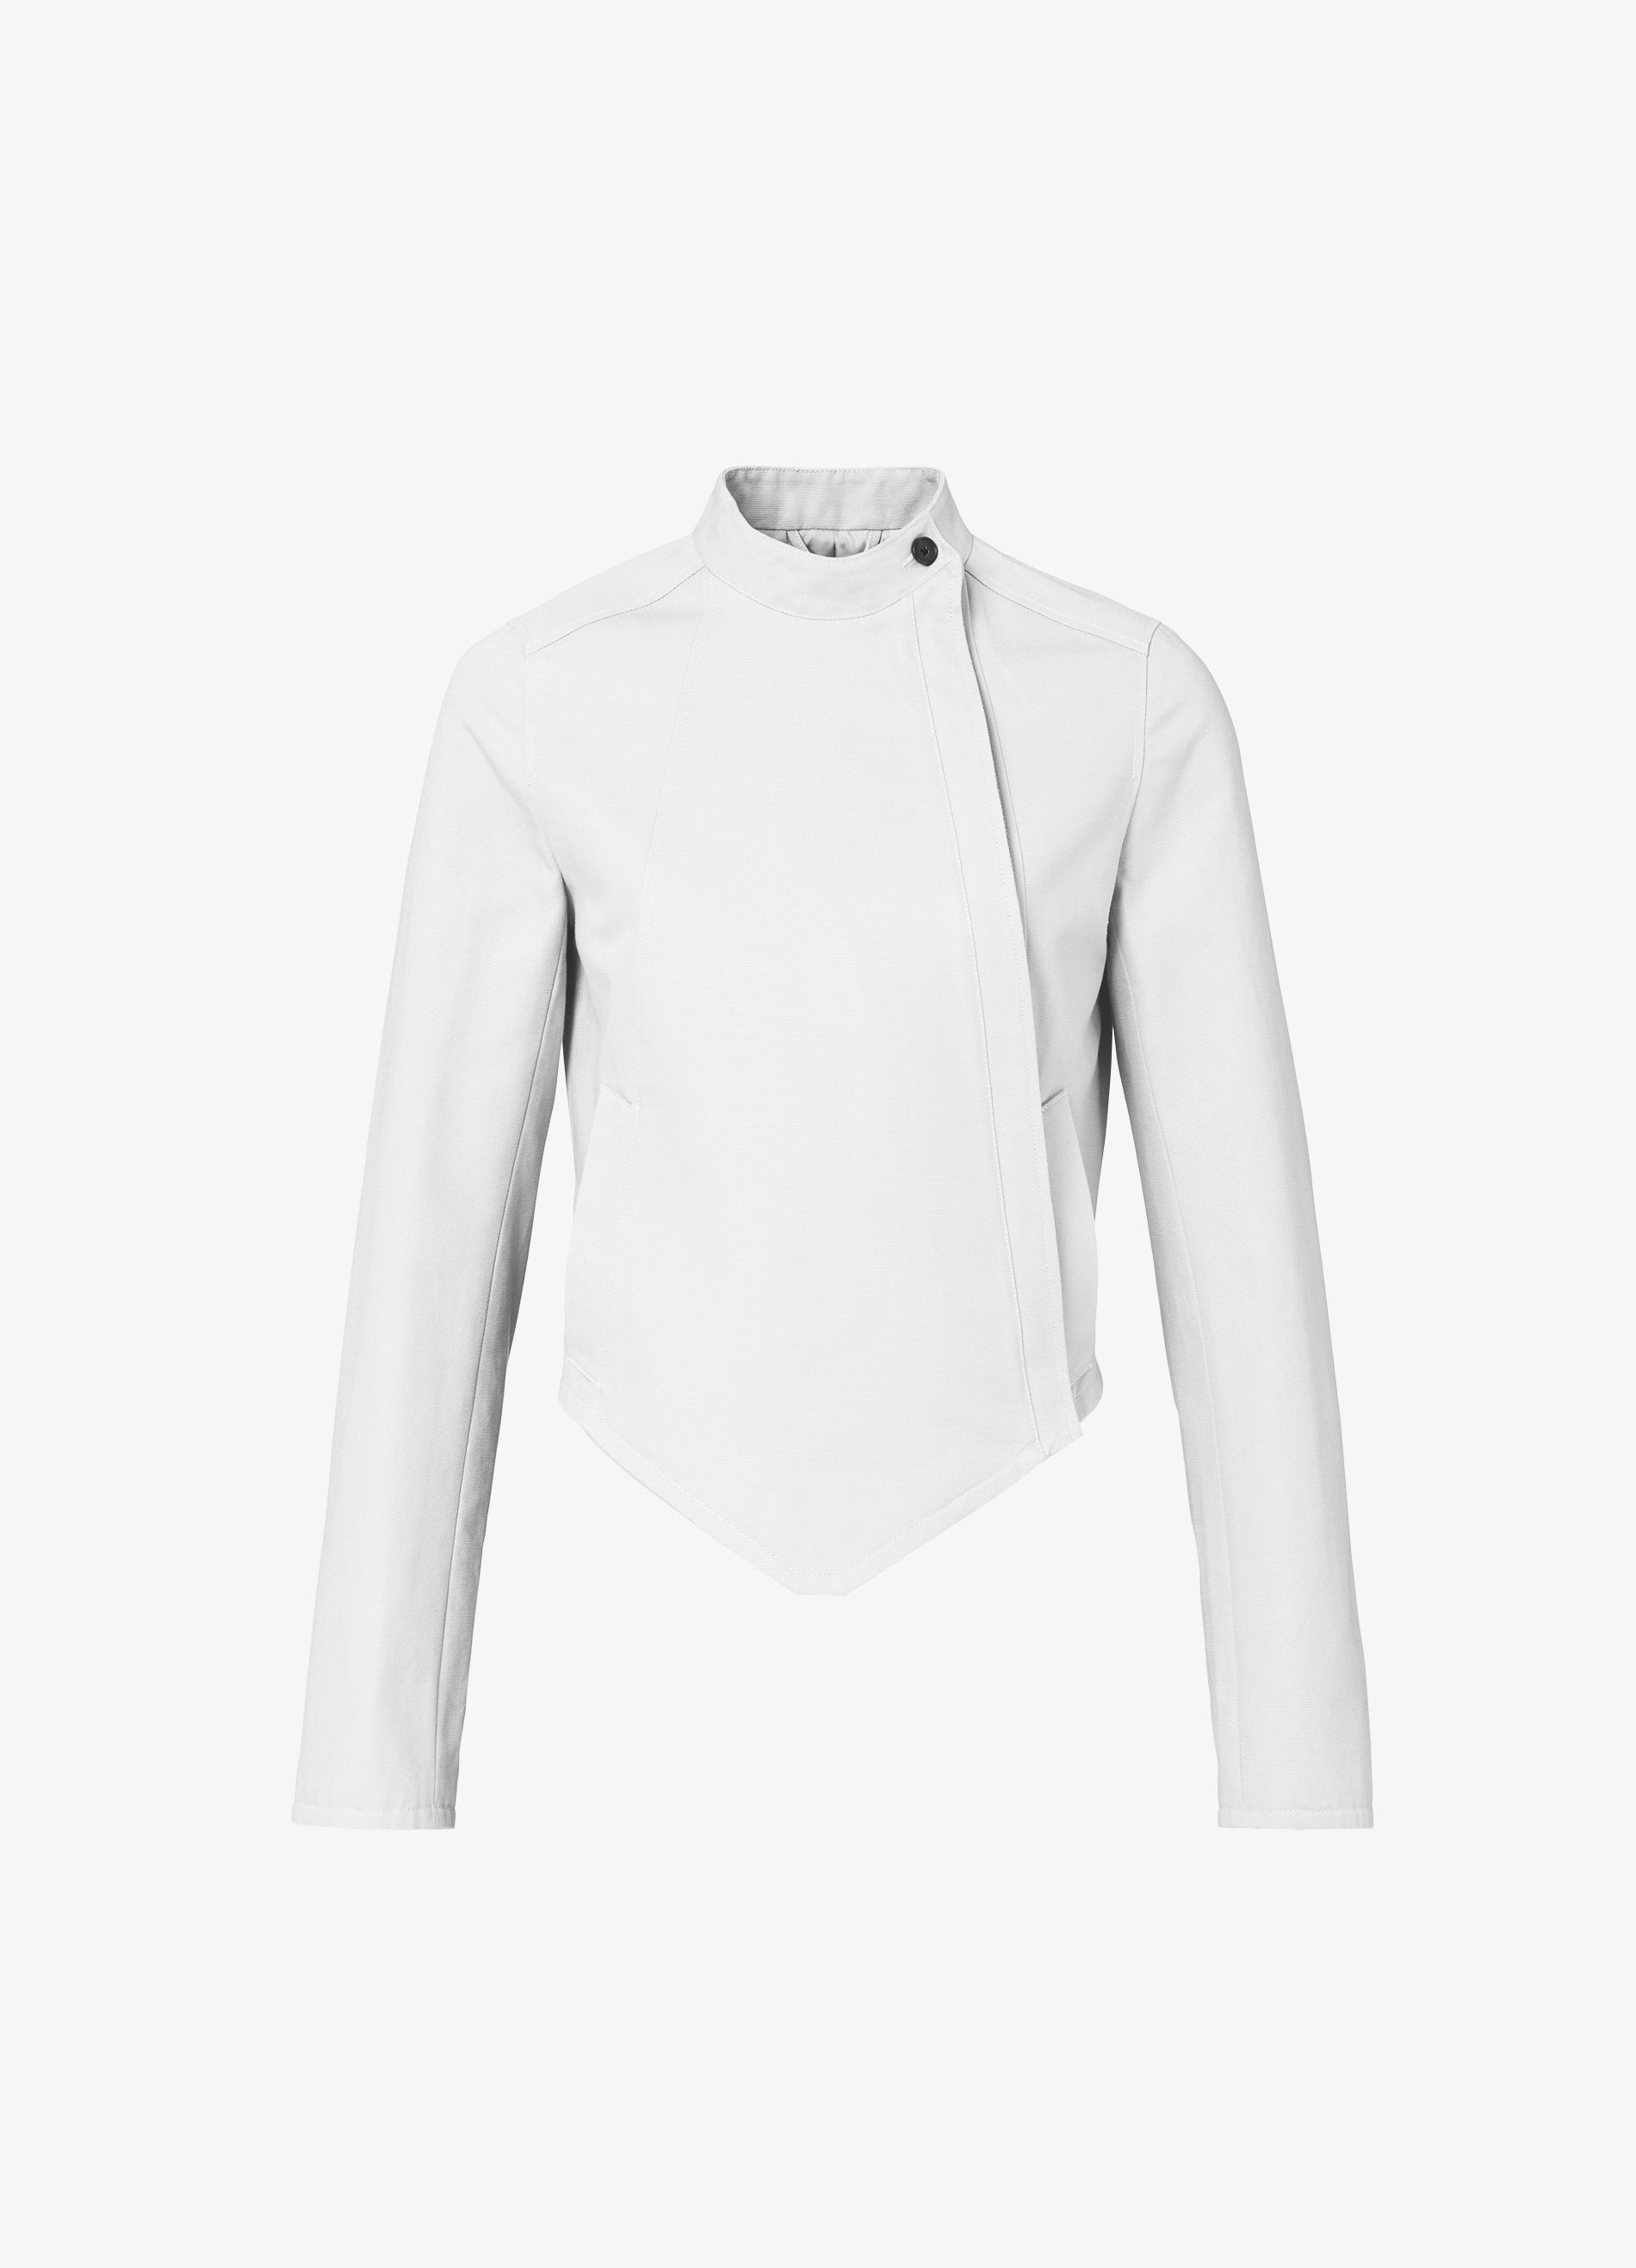 SLVR Fencing Jacket: features all the details of a classic sword-fighting uniform, including a cropped silhouette, overlapping front panels with a zip closure, and a button placket on the cuffs. A simple collar with a button closure and side welt pockets completes the look of the jacket.